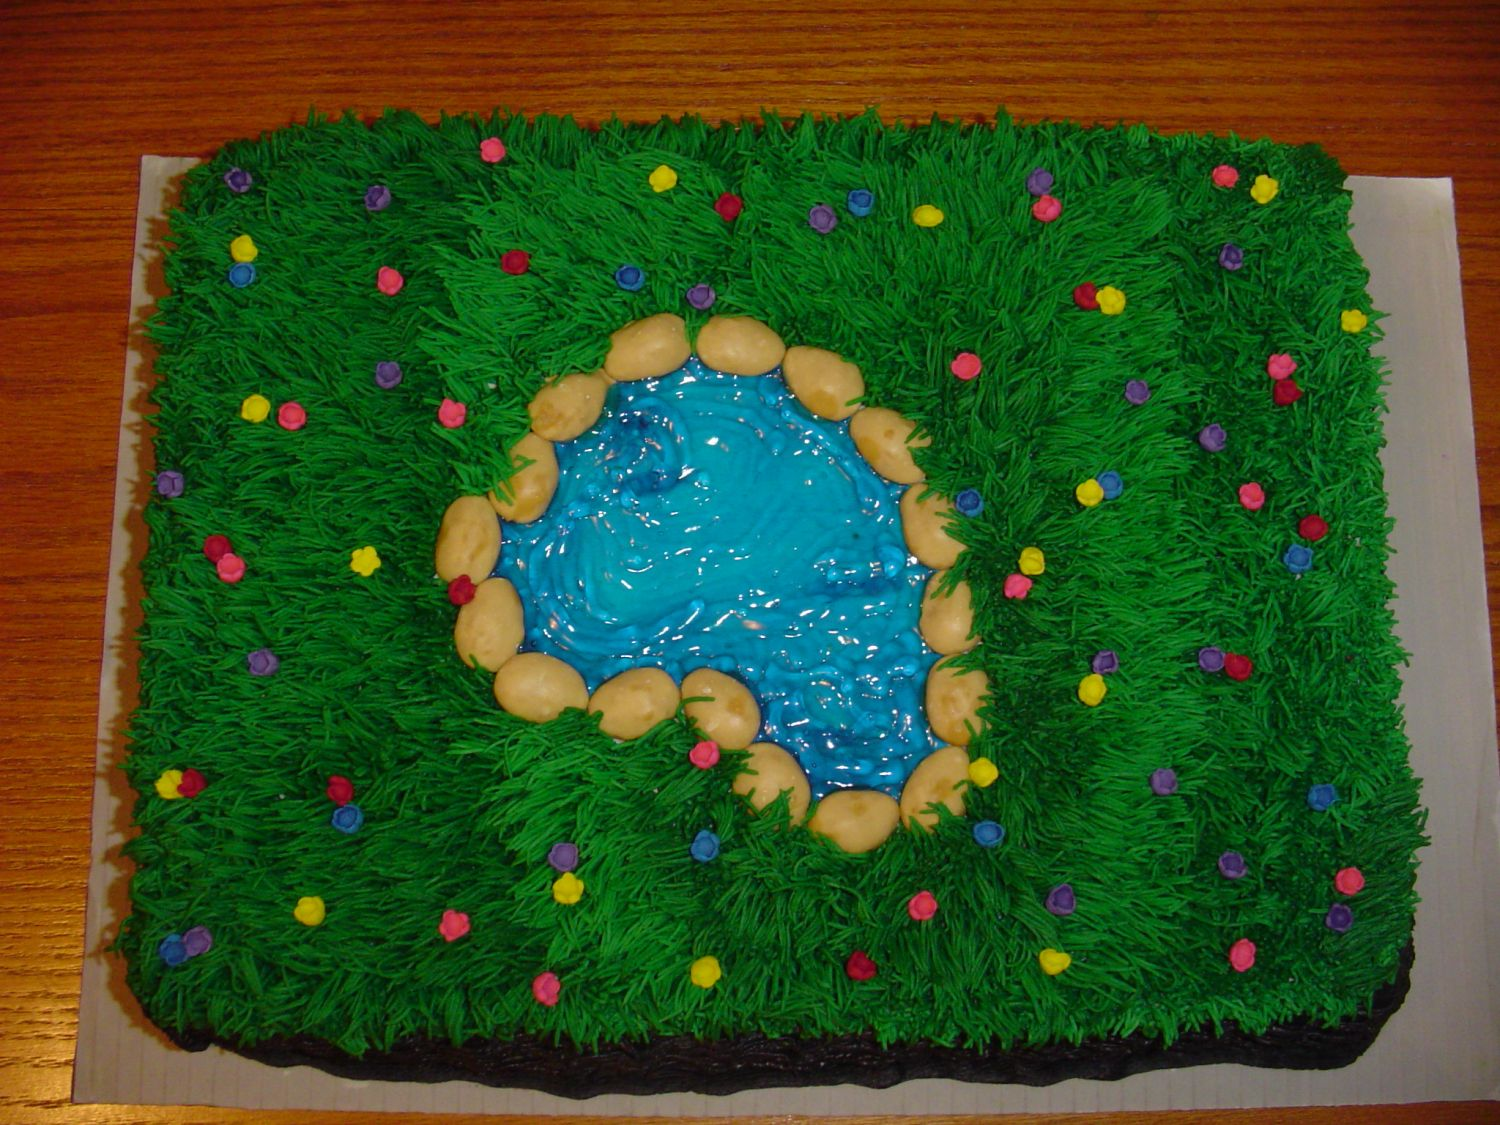 Cake is a Yellow cake. Baked in two 9 inch pans. Grass made with Wilton tip. Rocks around pond are Maple Nut Goodies (candy). The pond was made with Blue Gel Icing. Flowers made out of Gum Past.